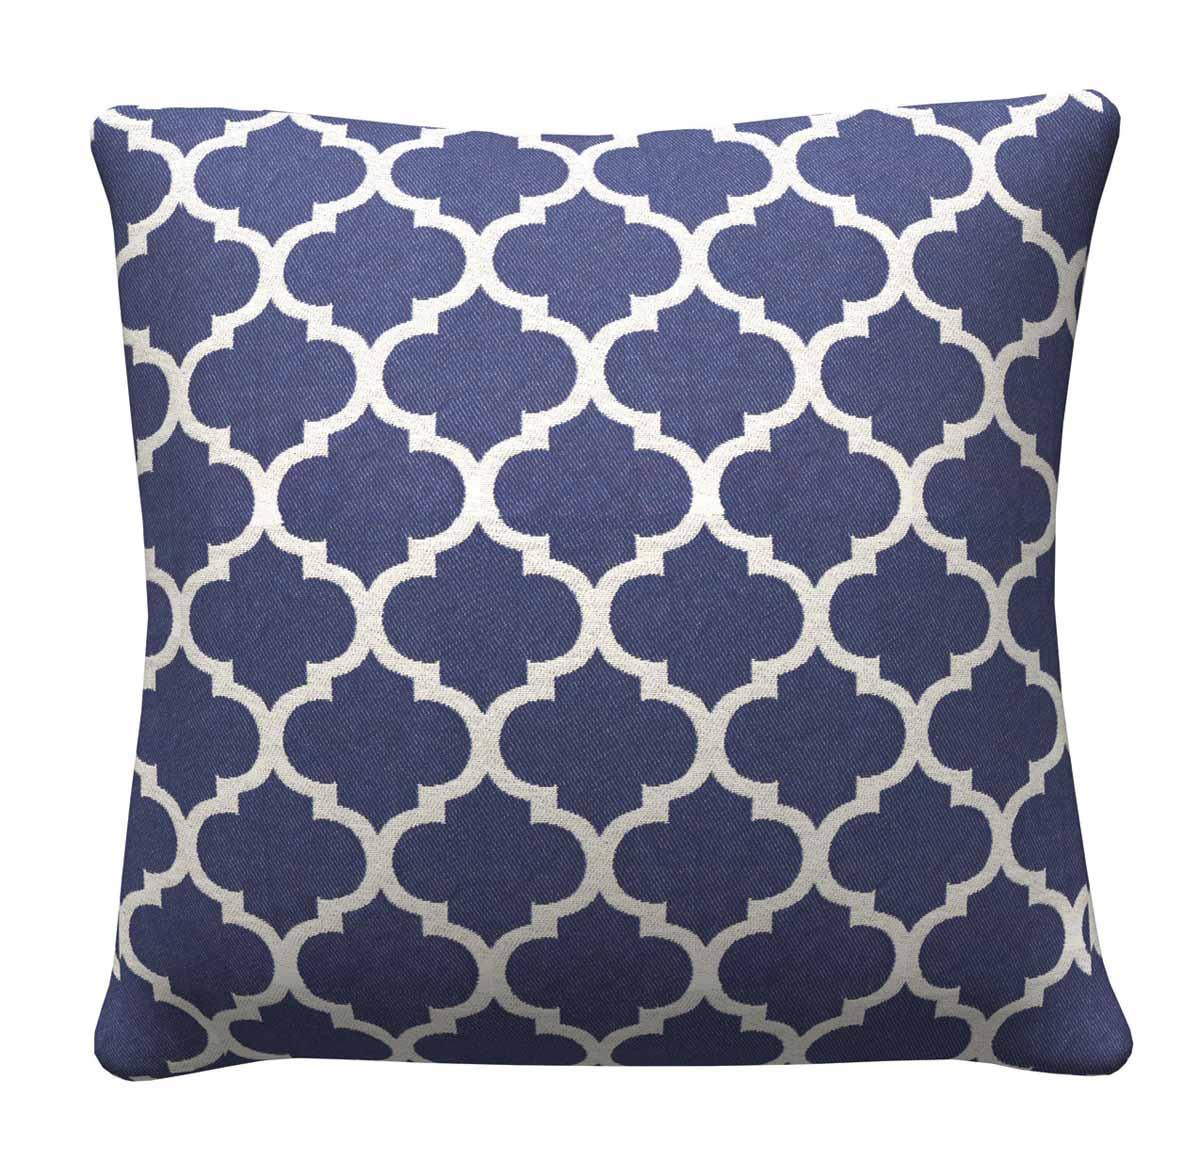 905323 Navy Quatrefoil Pillow